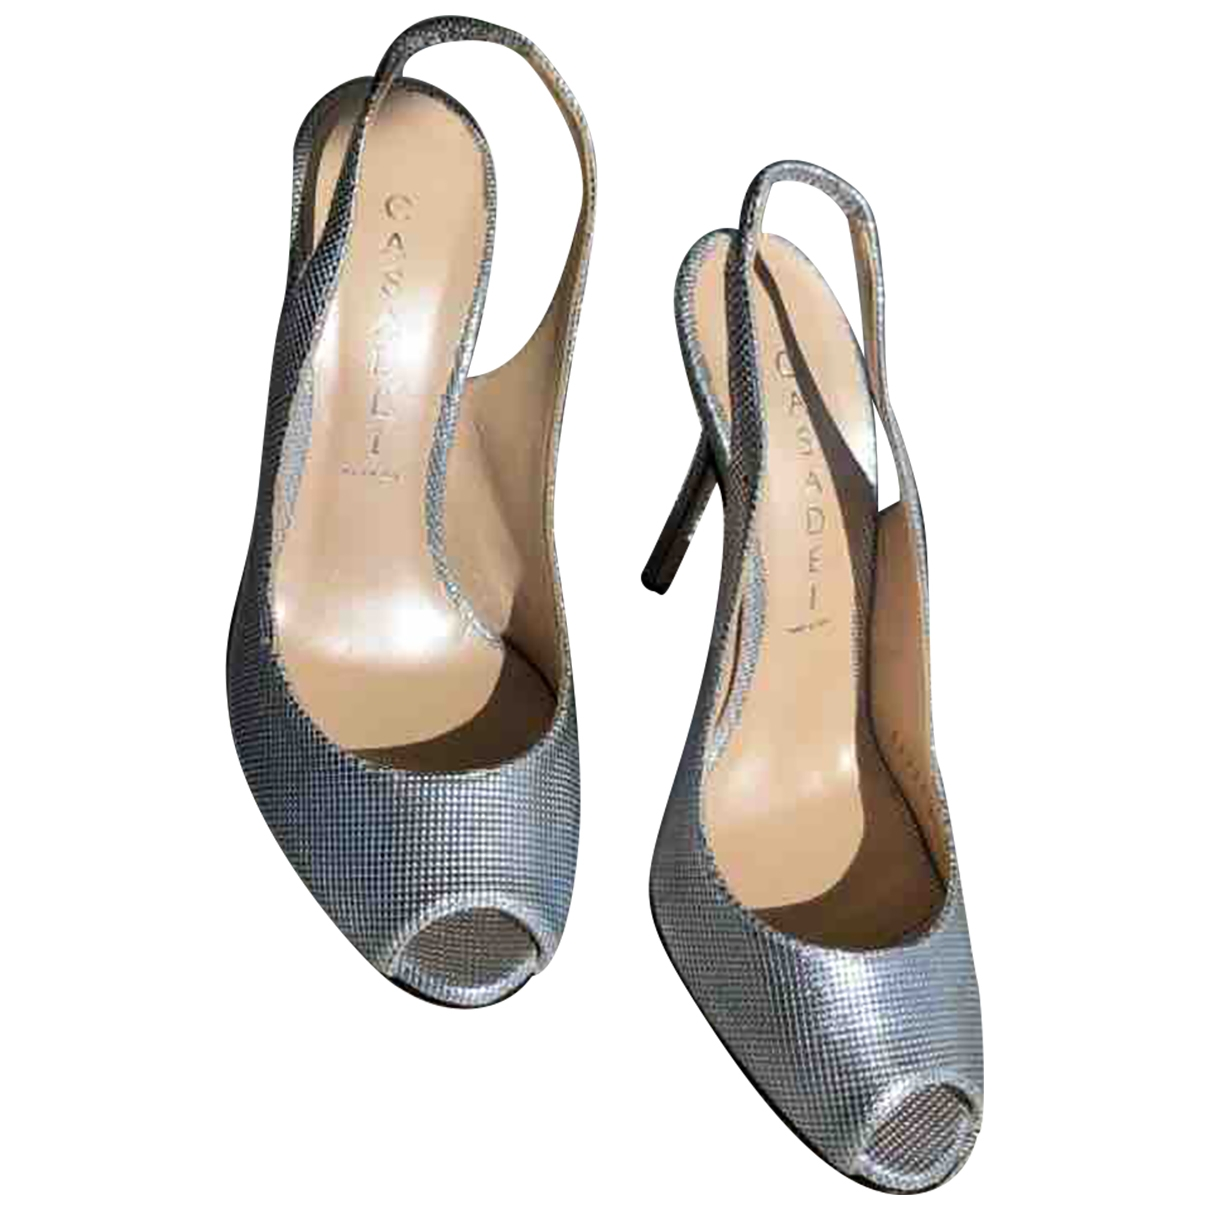 Casadei \N Silver Patent leather Heels for Women 35 EU